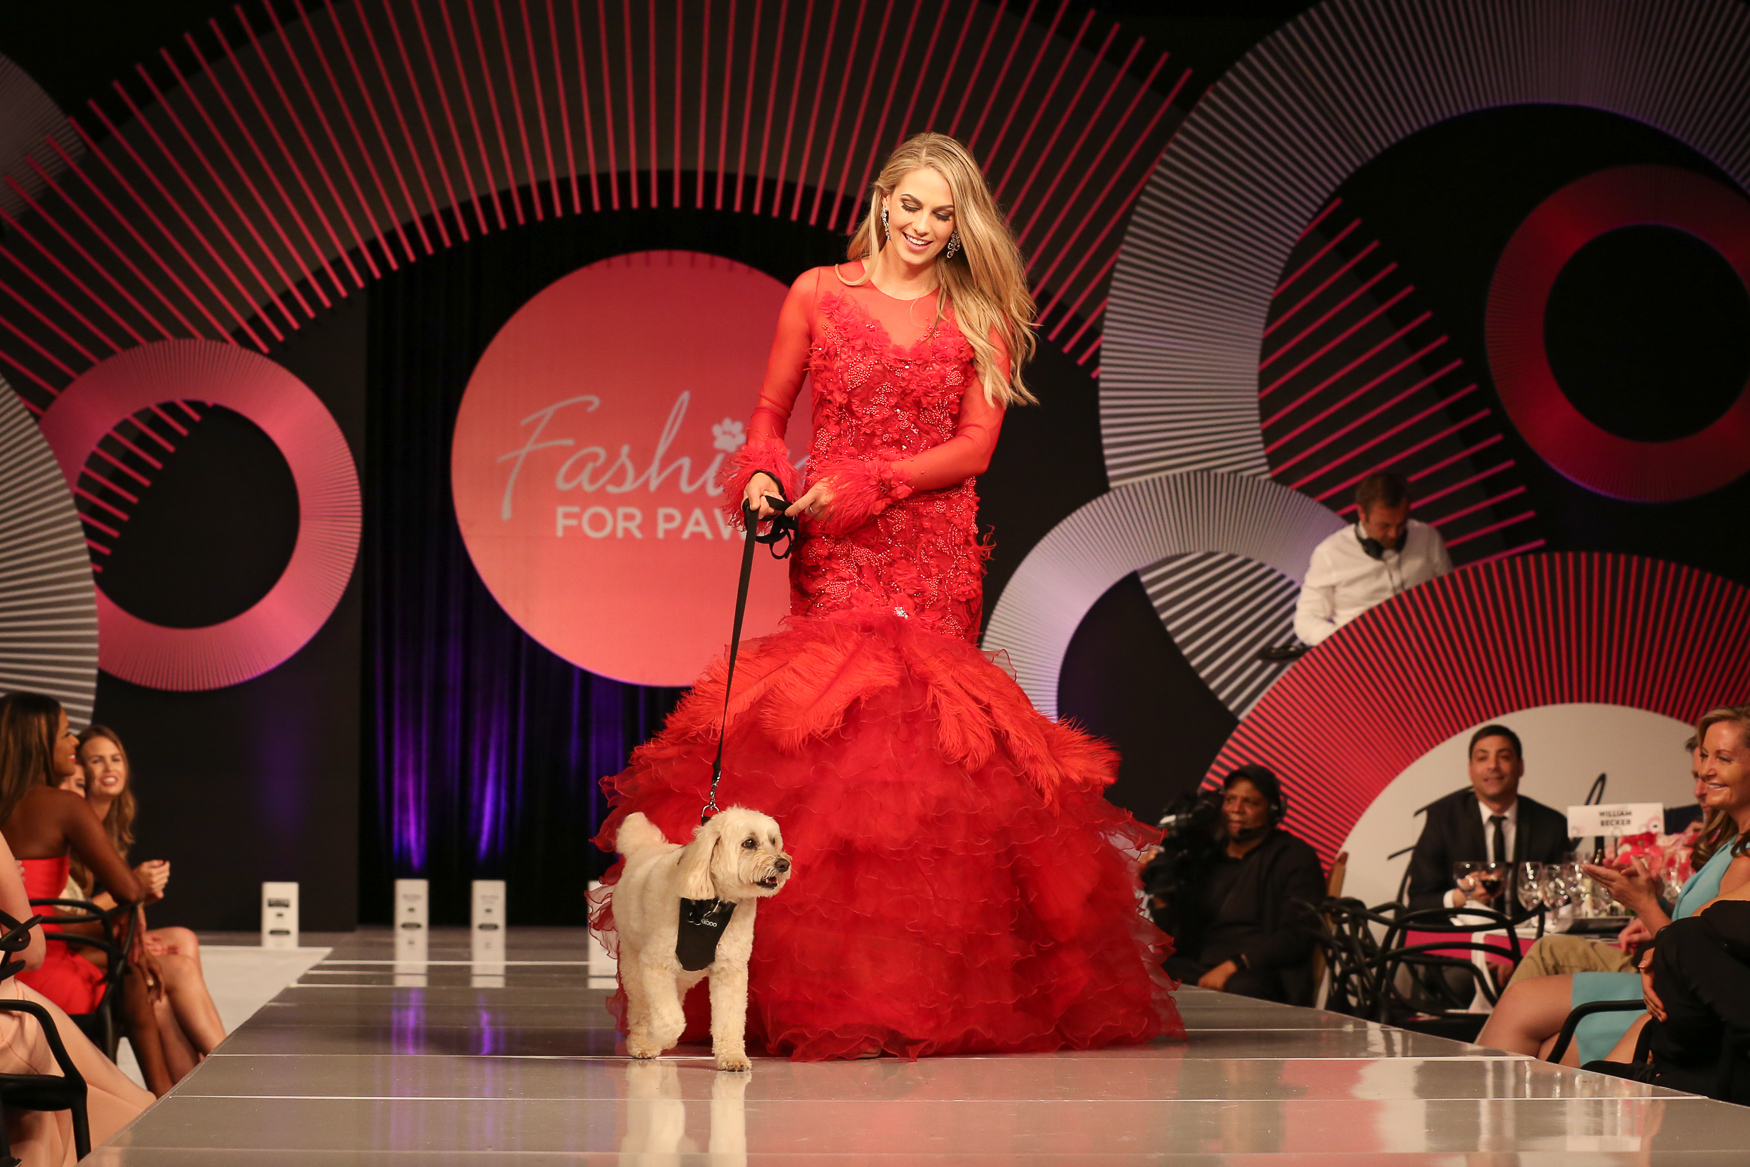 Spotted at Fashion for Paws: This dress is all one hue, but the different textures make it anything but bland.{ } (Amanda Andrade-Rhoades/DC Refined)